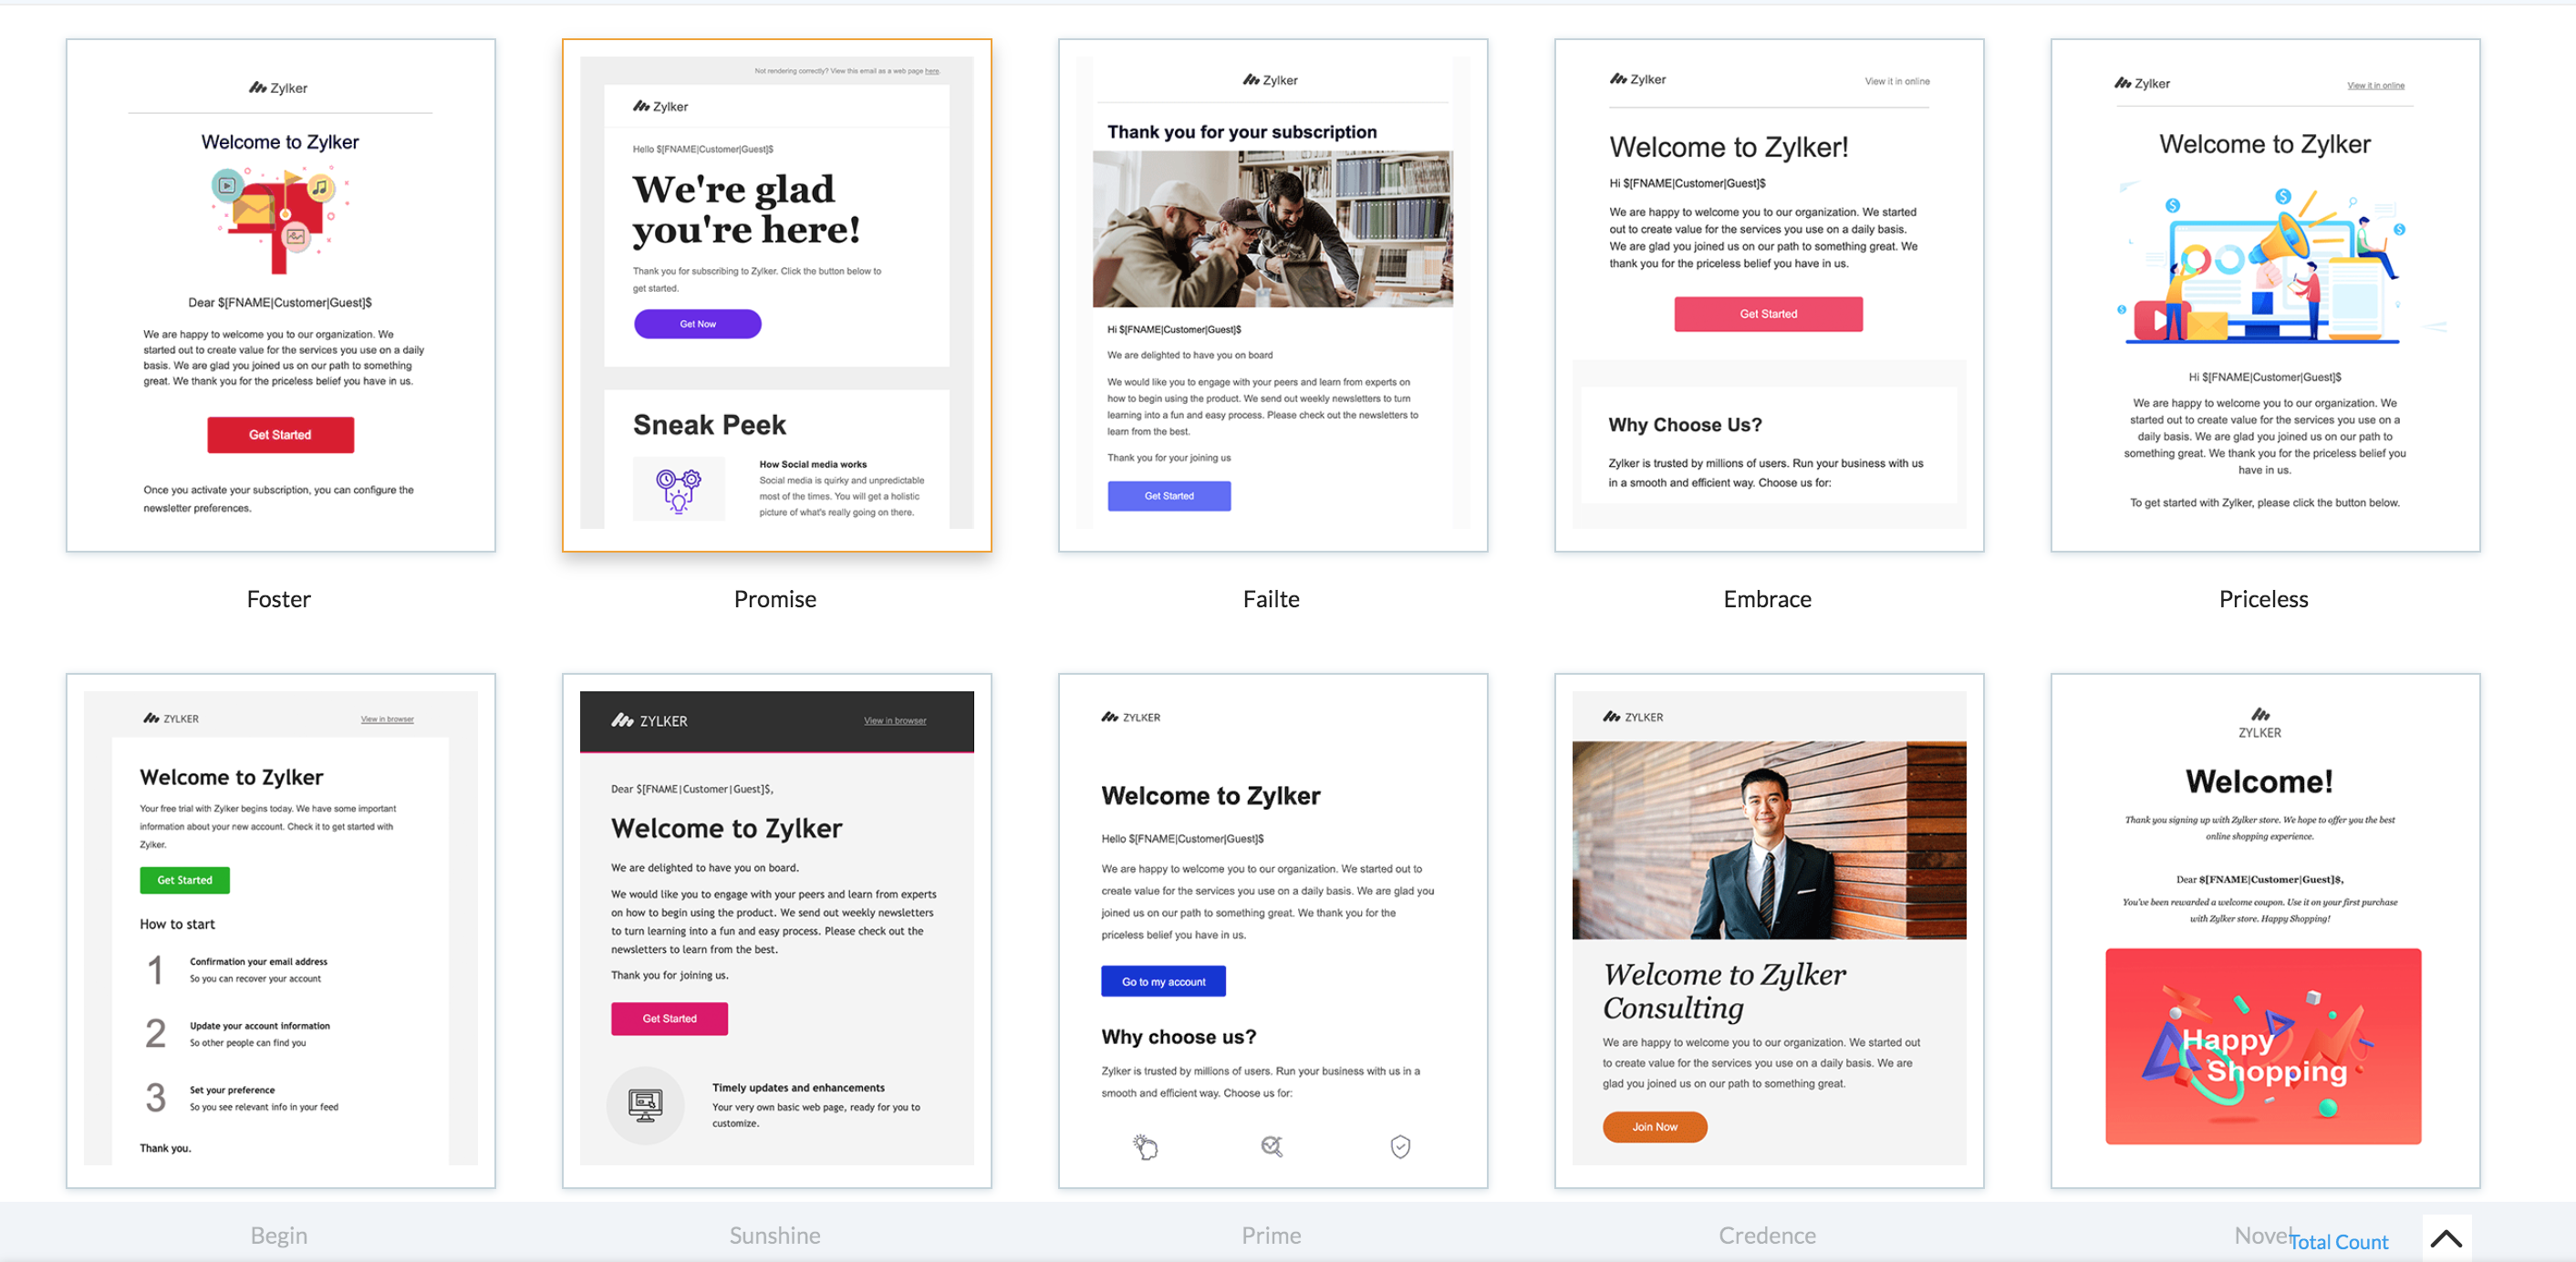 Pre-designed welcome email templates